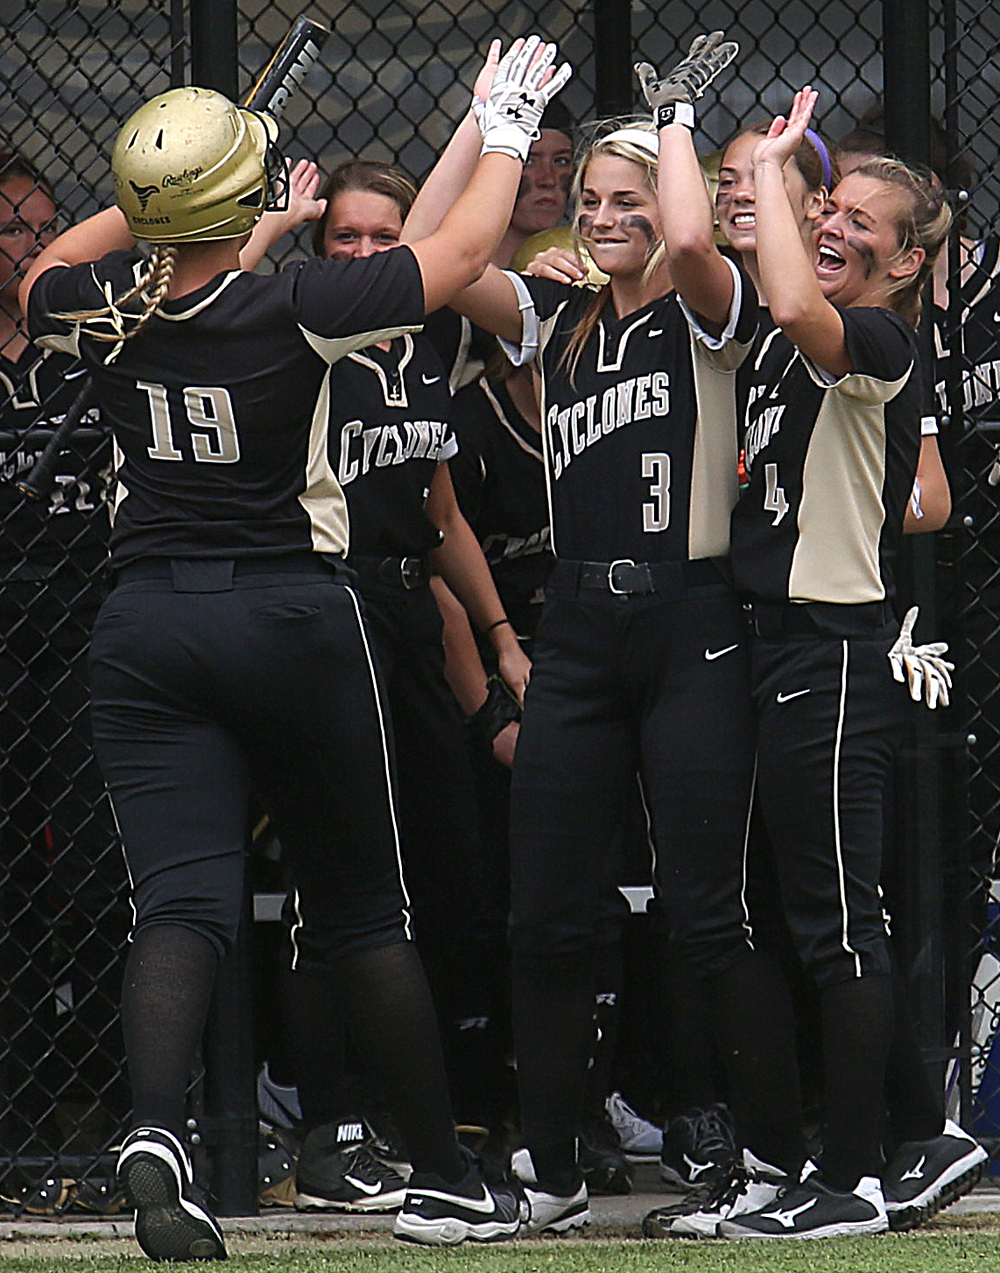 SHG baserunner Ashton Dyche is welcomed home to the dugout by teammates after she scored her team's second run of the game Monday. David Spencer/The State Journal-Register